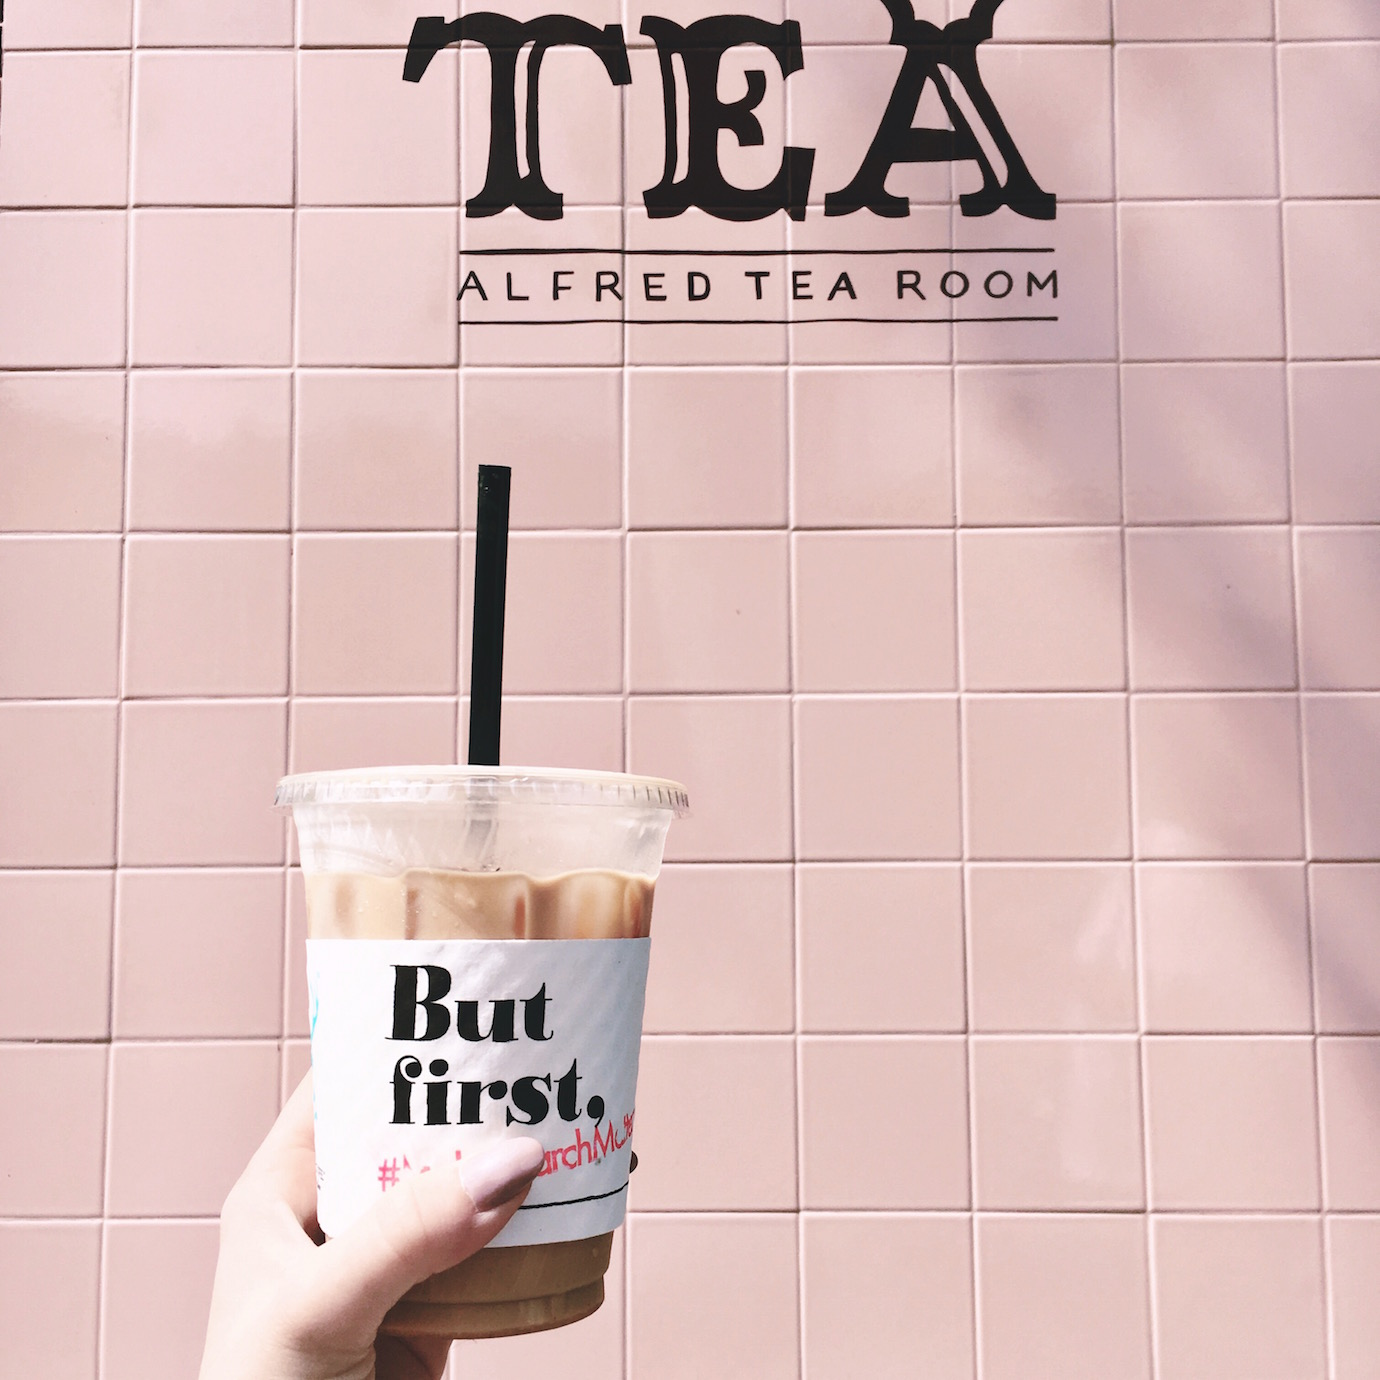 Blondie in the City | Instagram @HayleyLarue | Alfred Tea Room